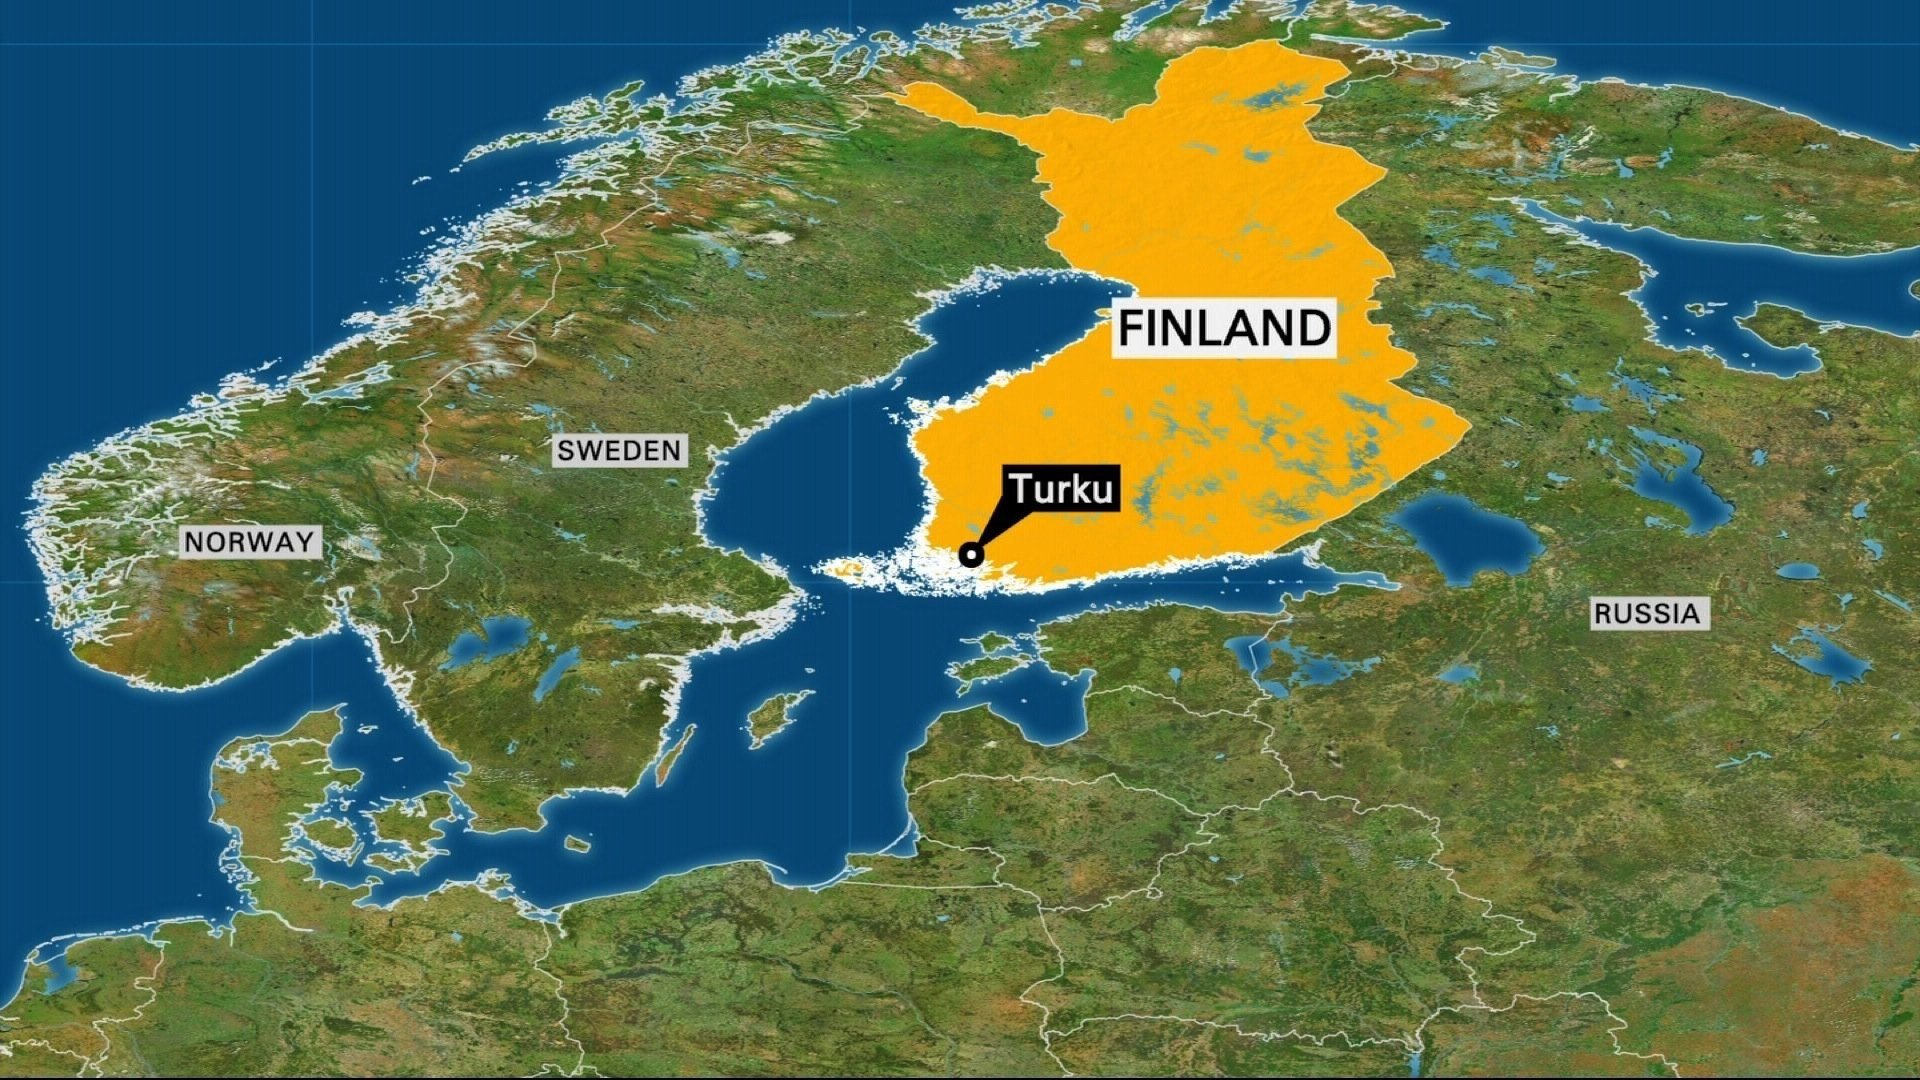 Killed, 6 Injured in Finnish Stabbing